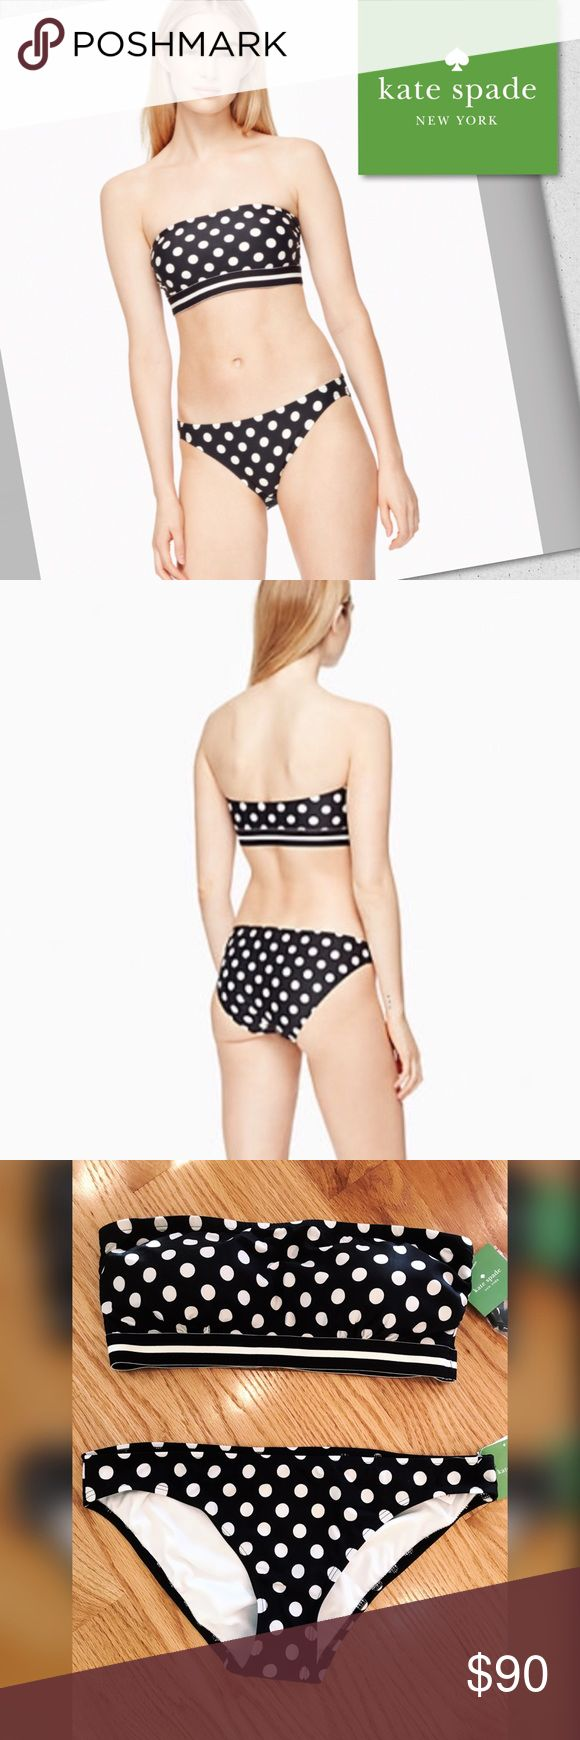 Kate Spade Polka Dot Bandeau Bikini She wore an itsy bitsy, teeny weenie, black Polka dot bikini...🎼 Kate Spade beautiful bandeau-style top and bikini bottoms from the 2017 collection. Clean lines, has removable straps and soft cups. Adjustable hook closure in back. Together the pieces are timeless and won't go out of style. For sizing, see measurement guide. These won't last long! kate spade Swim Bikinis